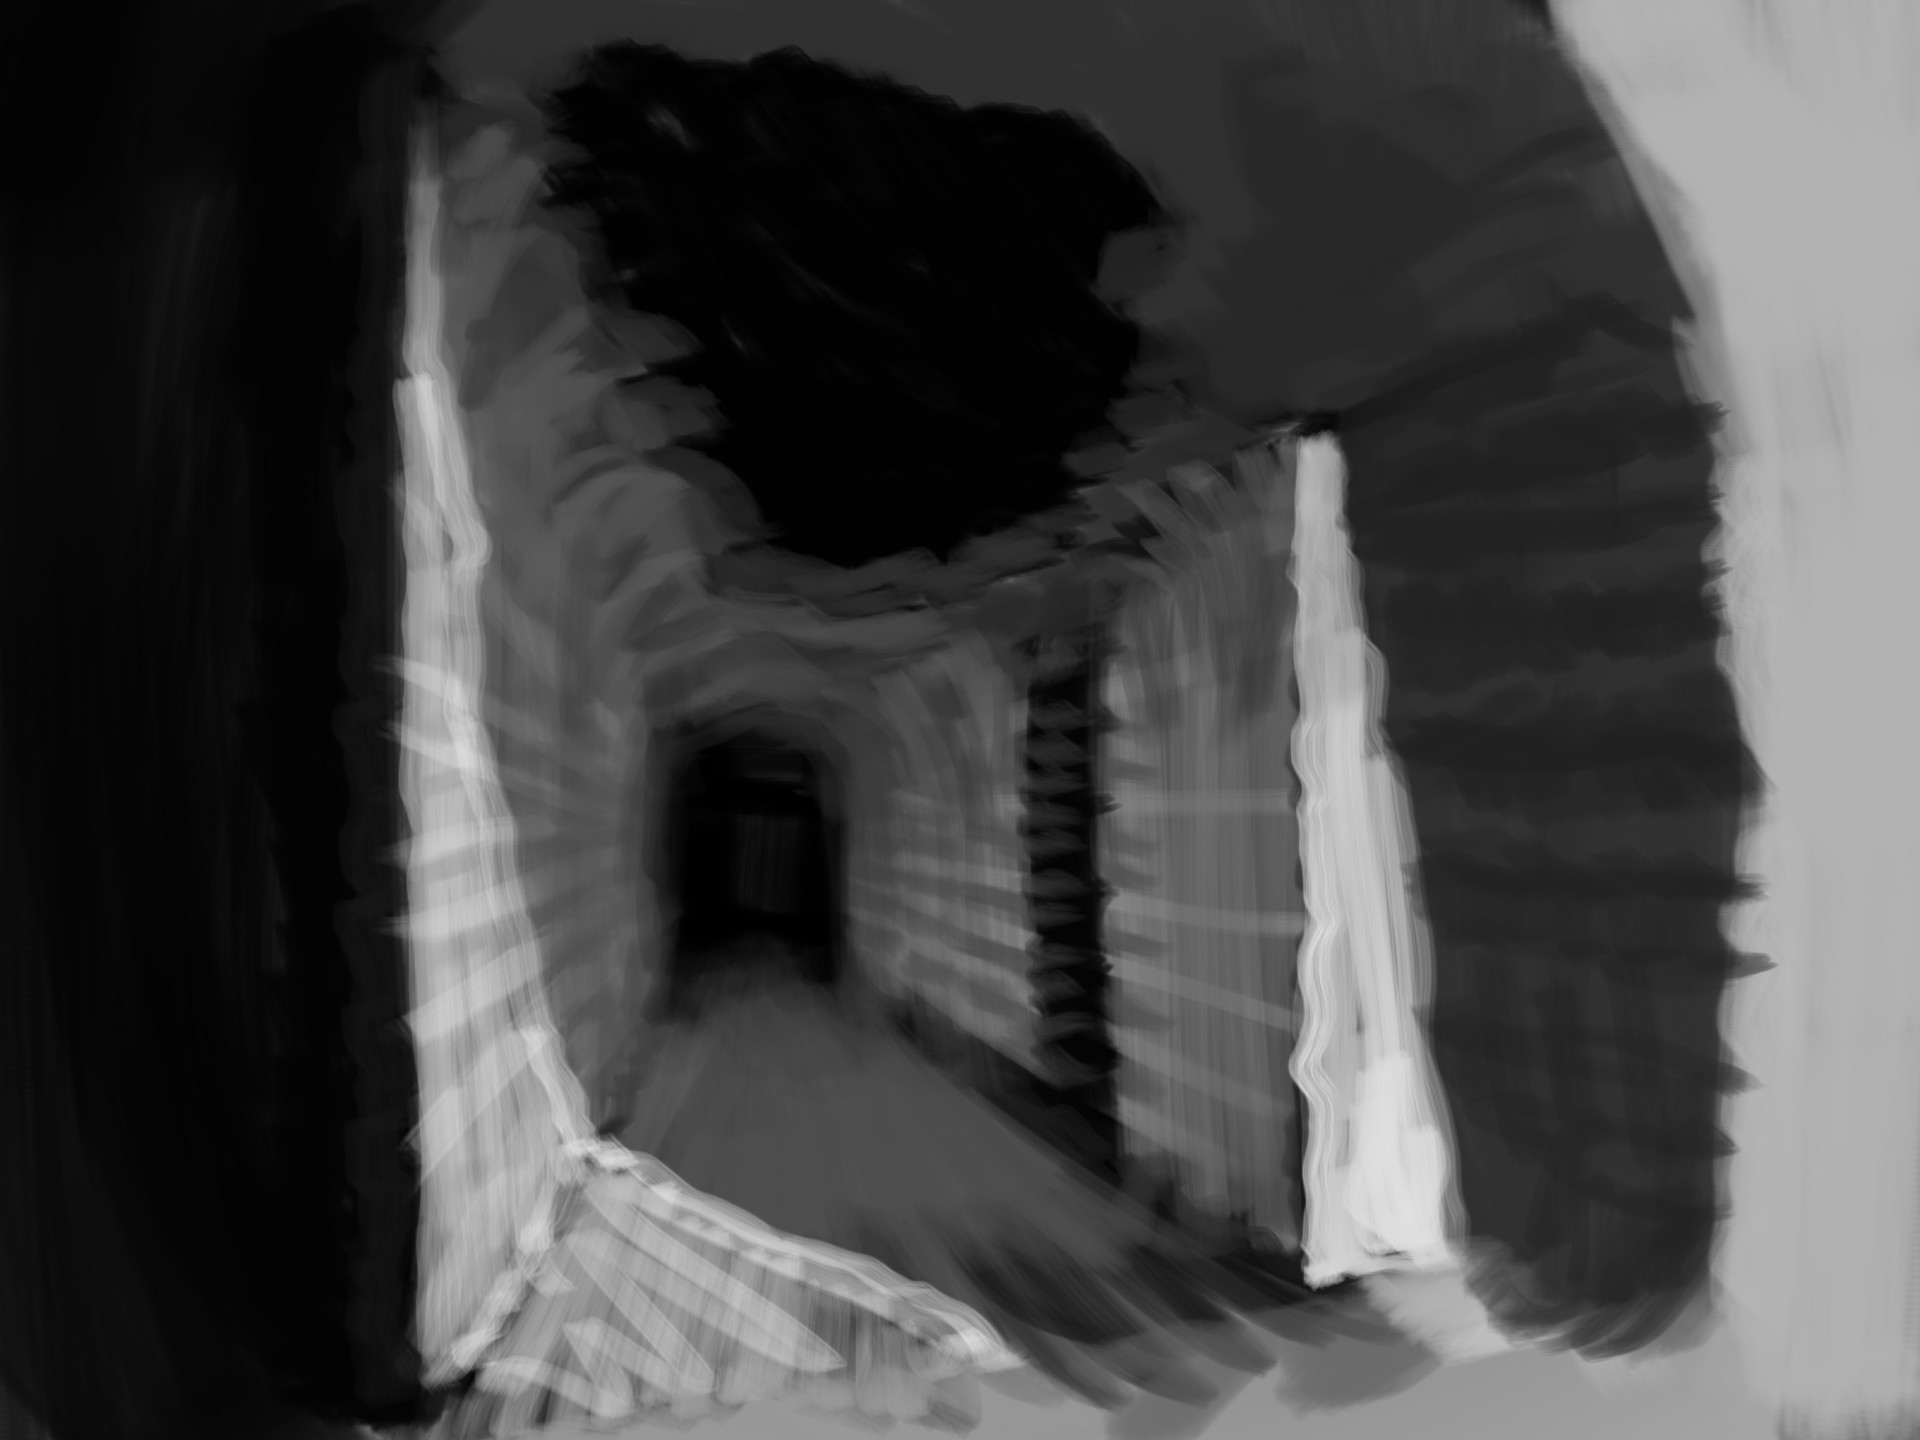 early sketch of the dungeon